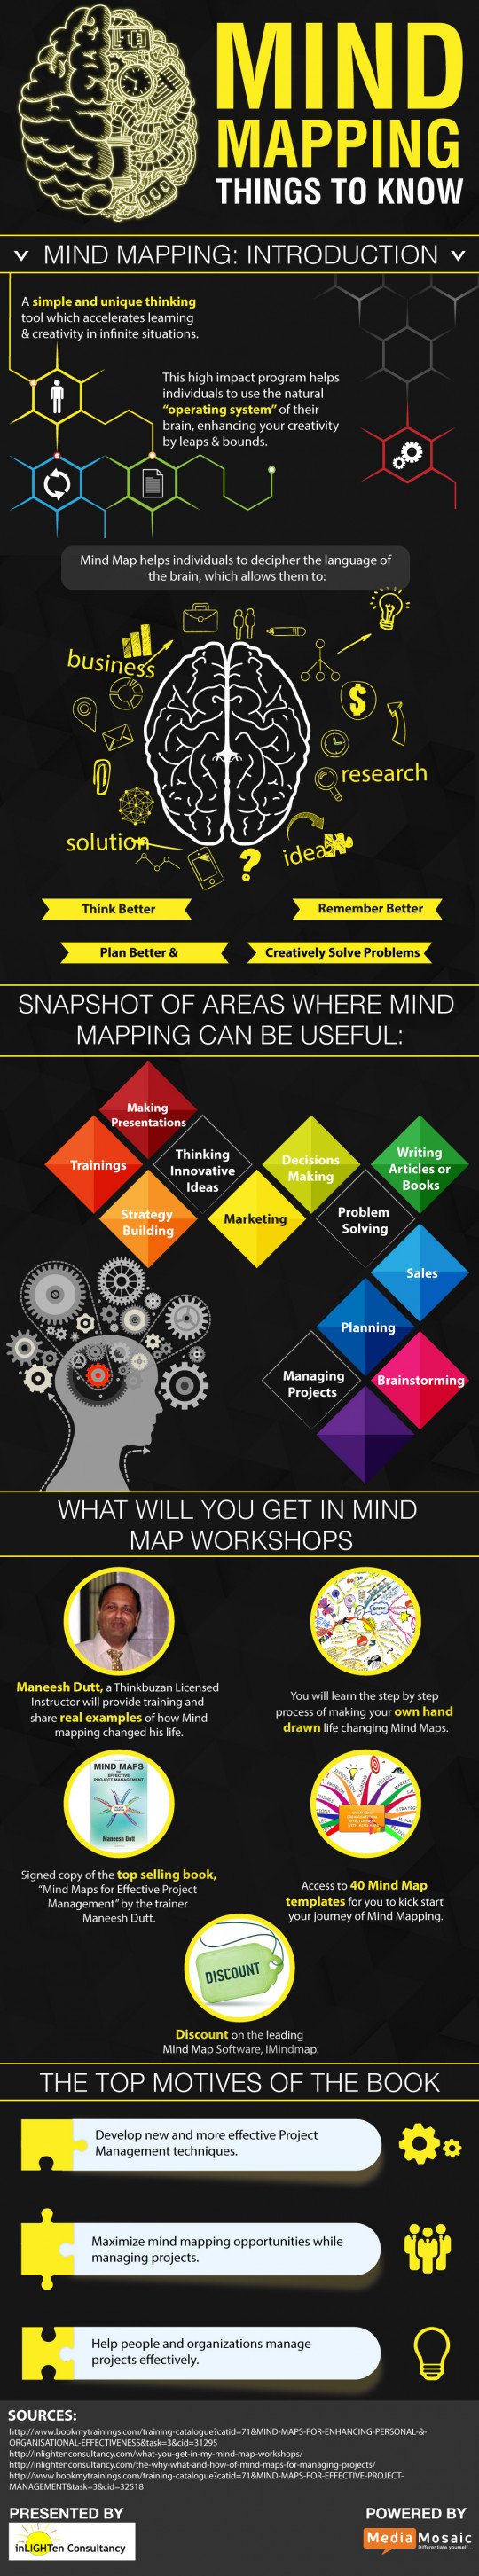 Infographic: Mind Mapping: Things to know